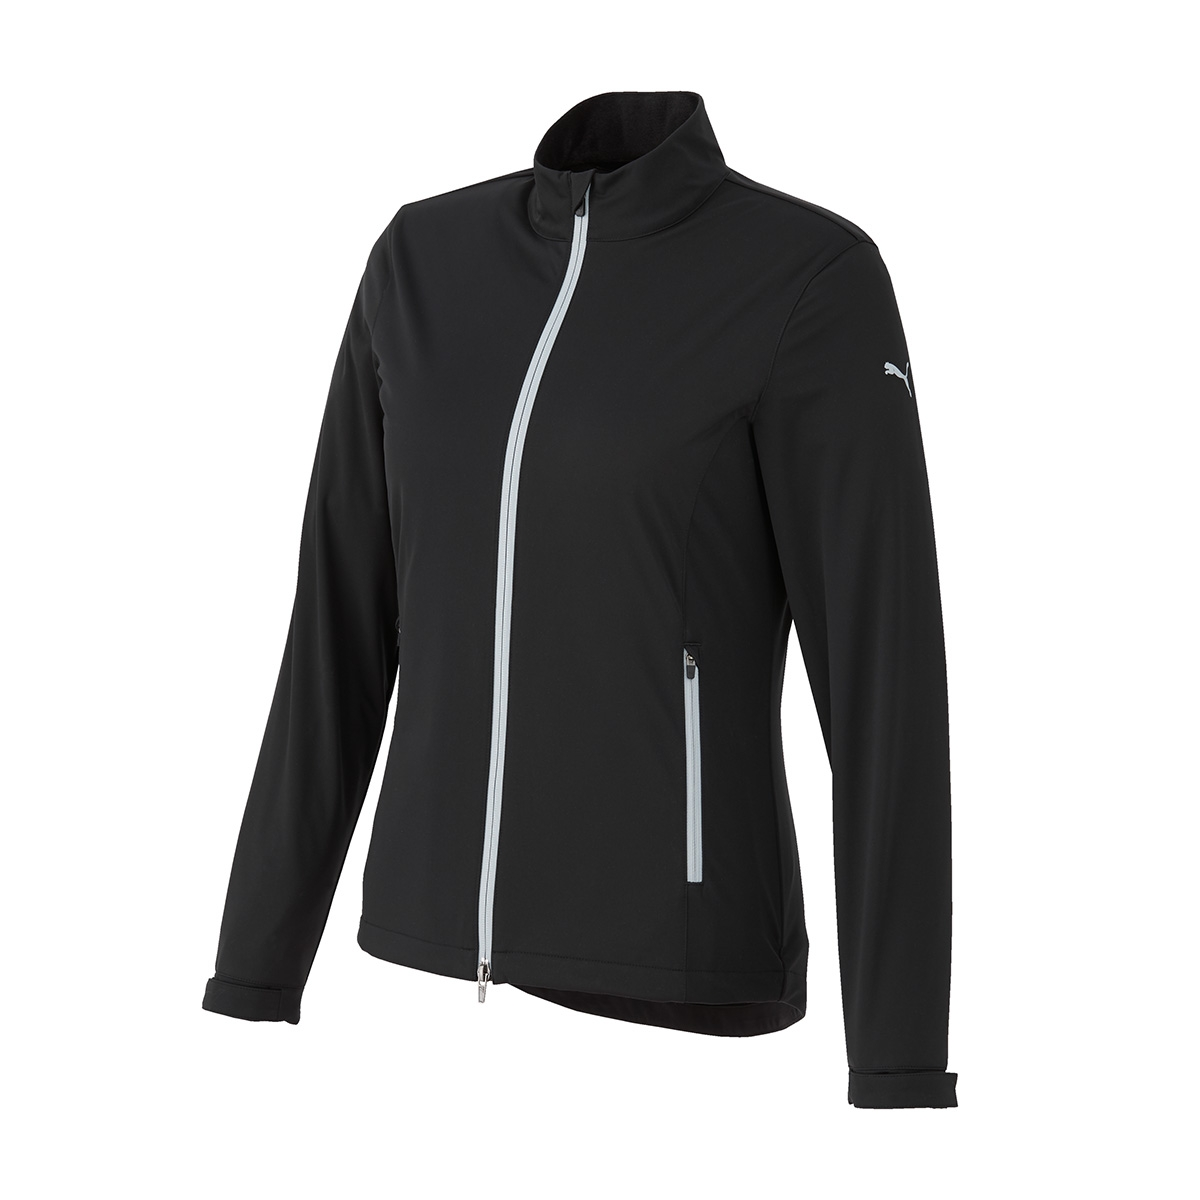 Puma Full Zip Golf Tech Women's Jacket, #98903 - Embroidered